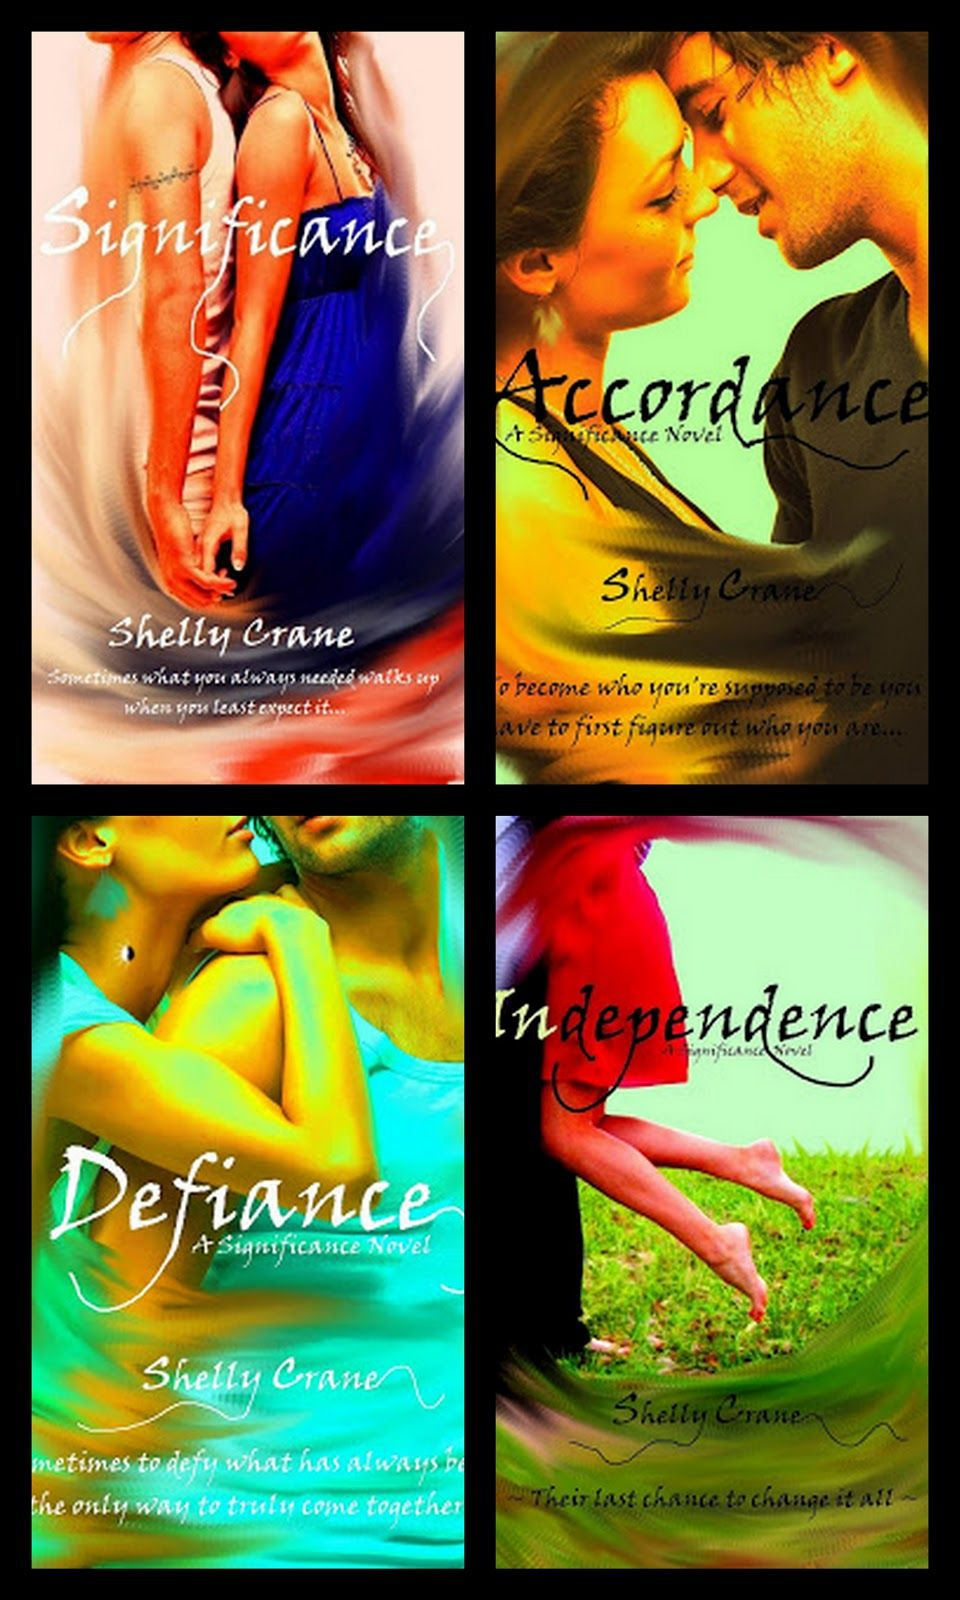 READ SIGNIFICANCE BY SHELLY CRANE EPUB